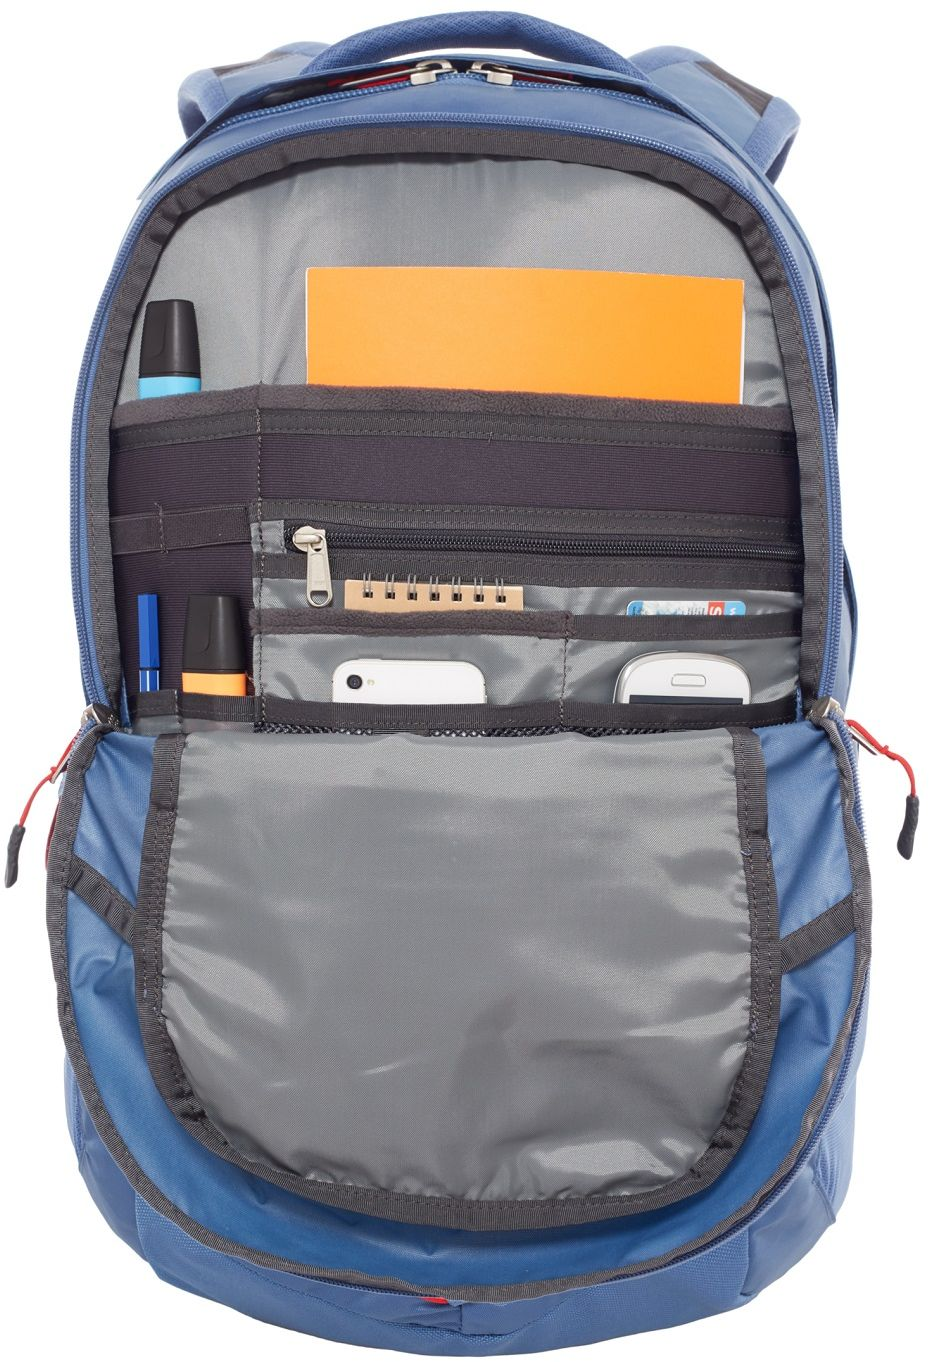 The-North-Face-Tnf-Borealis-28-L-cartable-randonnee-Sac-a-dos-Laptopfach-NEUF miniature 12